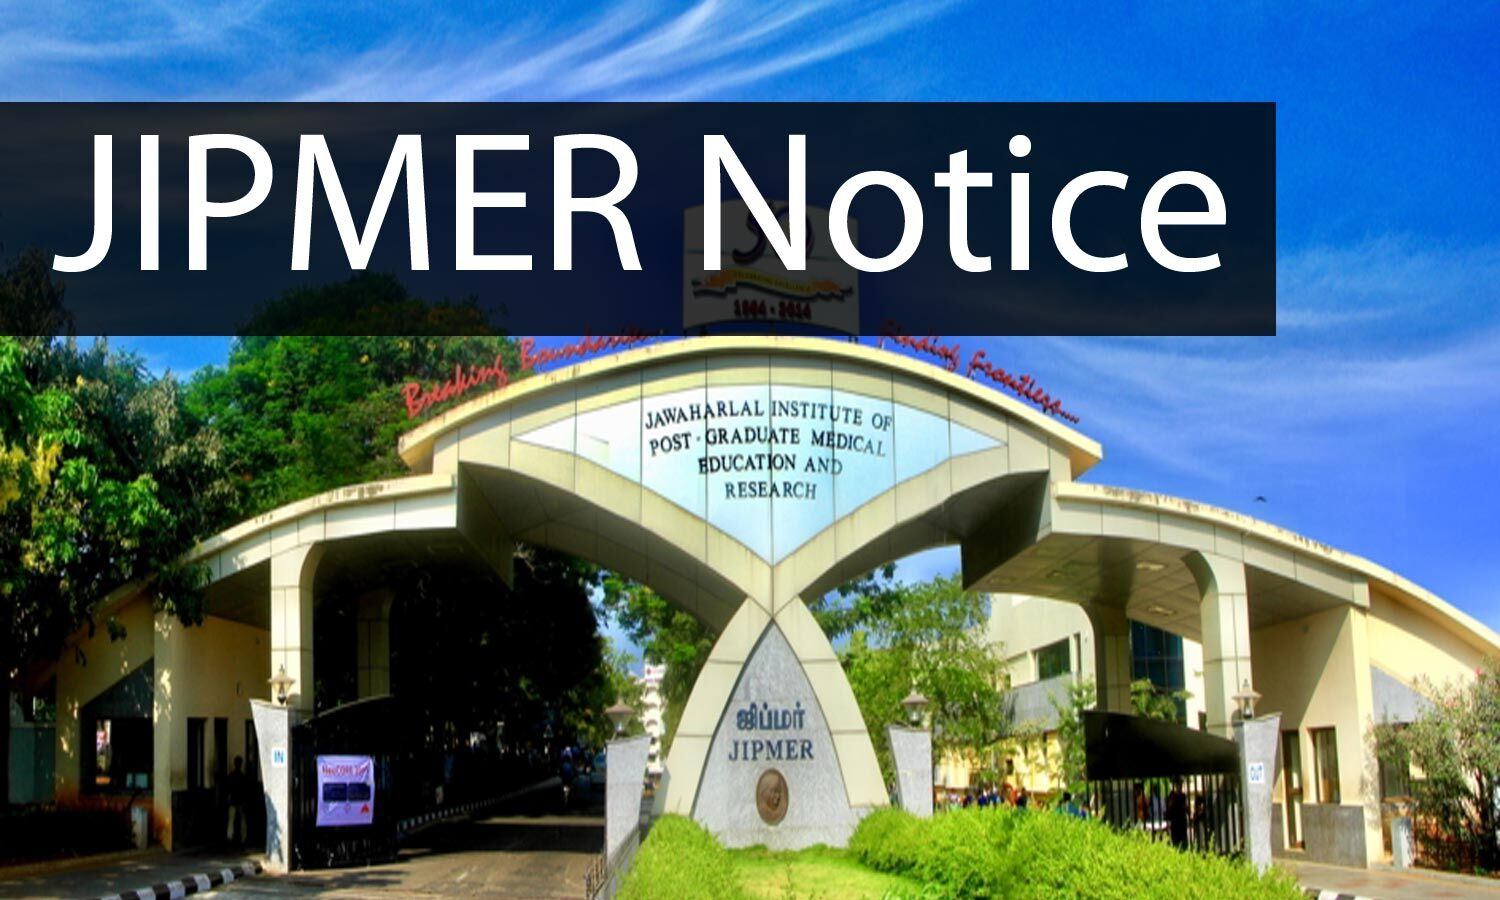 Upcoming Theory, Practical exams 2020: JIPMER issues notice